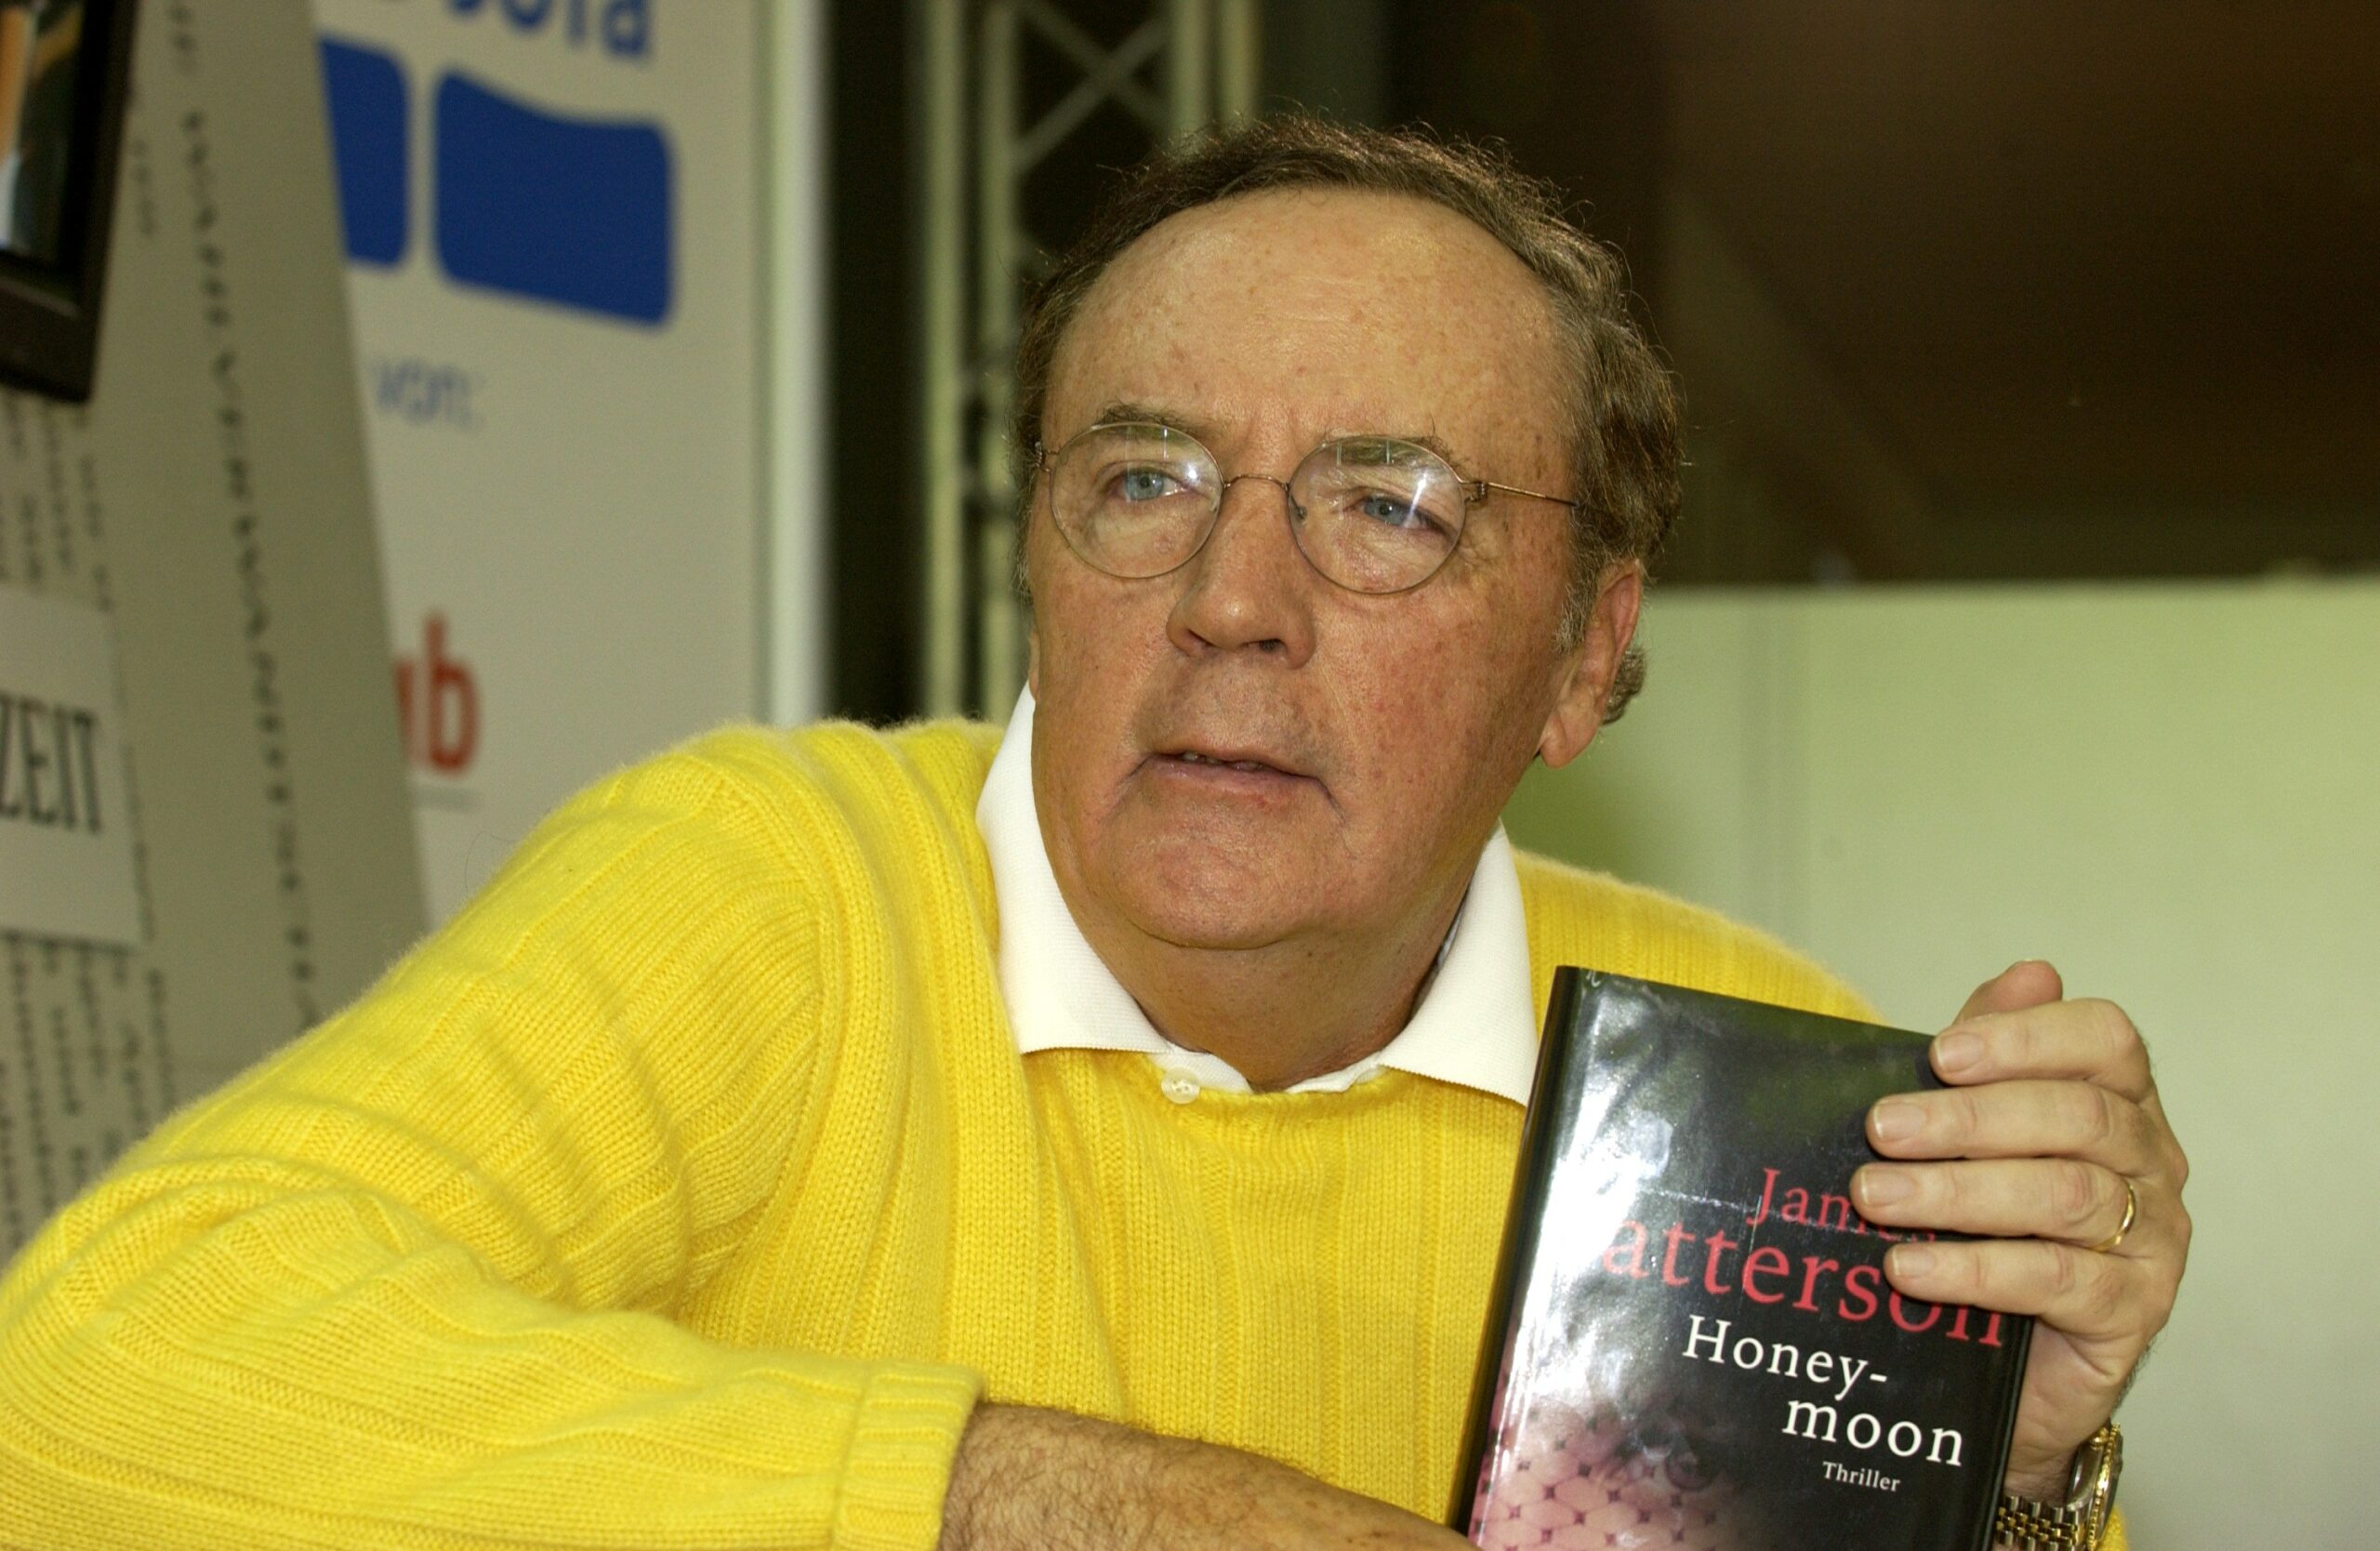 3 solid reasons why small books sell better than big books ... one of which even James Patterson openly agrees with